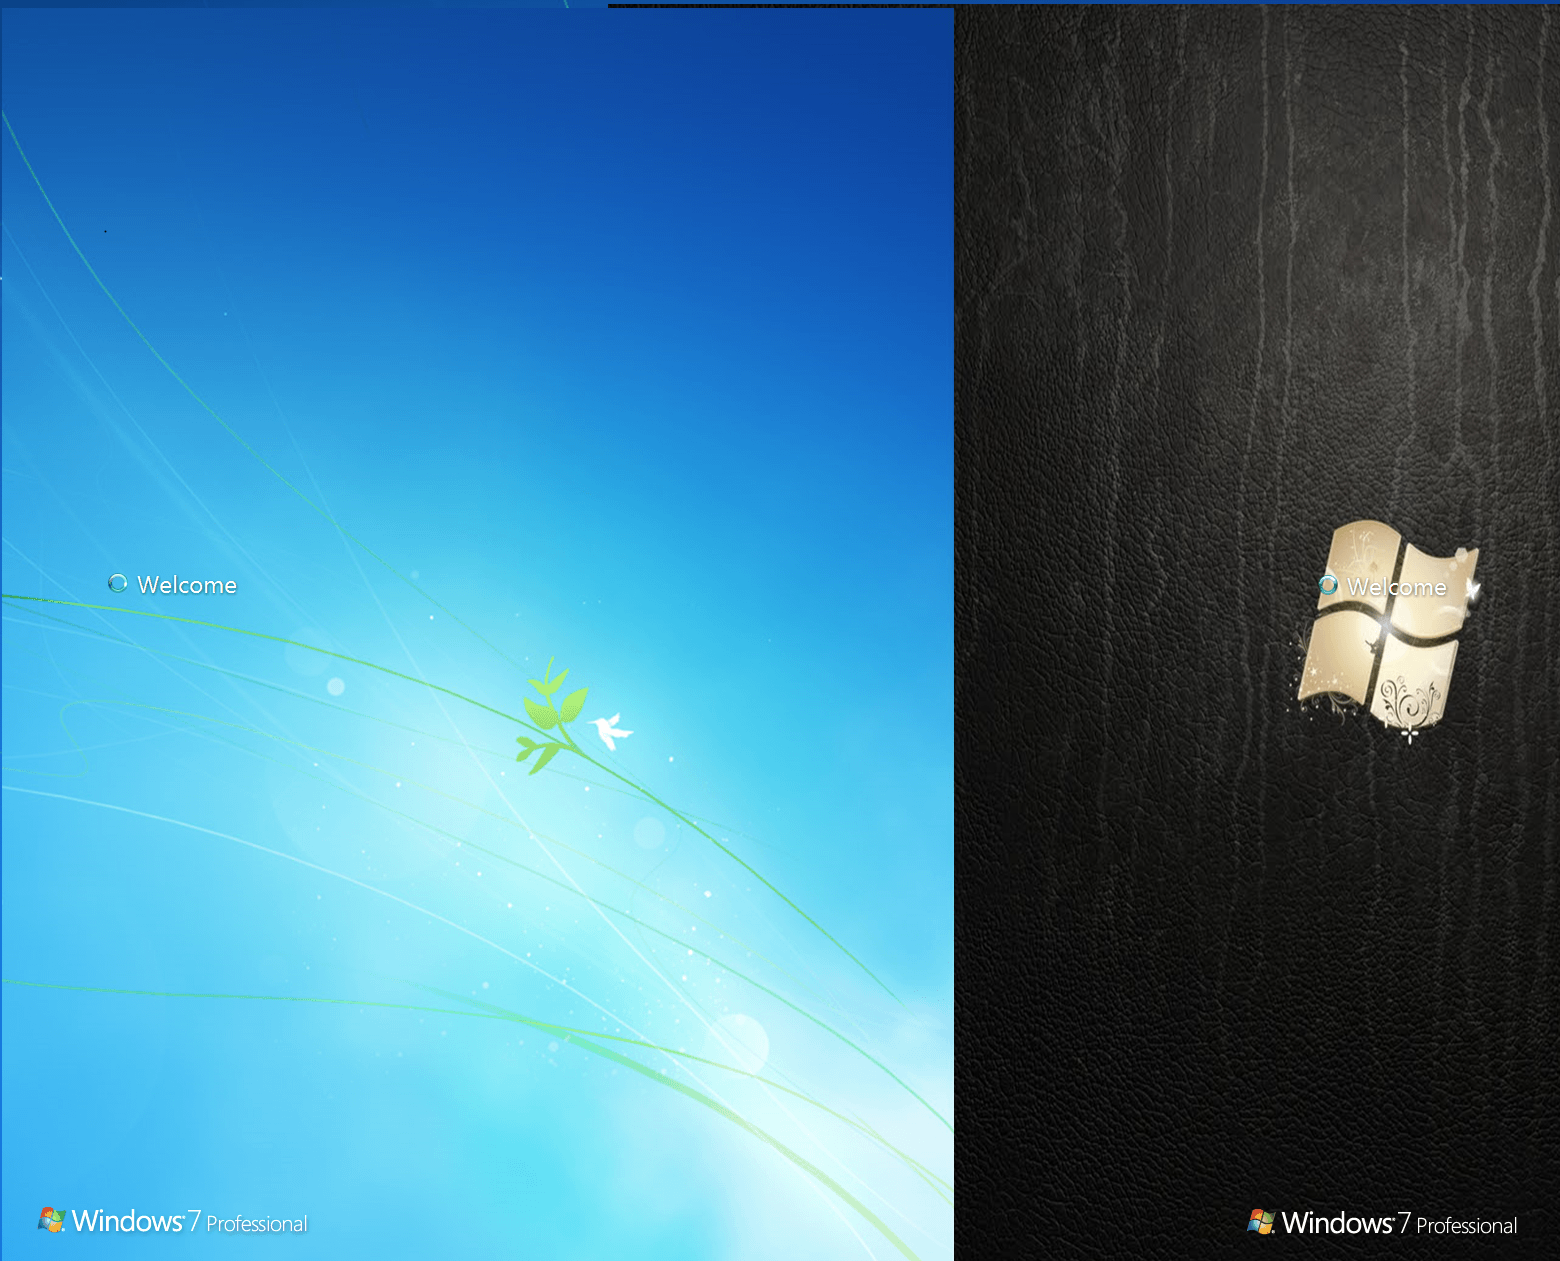 Change Windows 7 Logon Screen Background With Your Own   Doztech 1560x1261